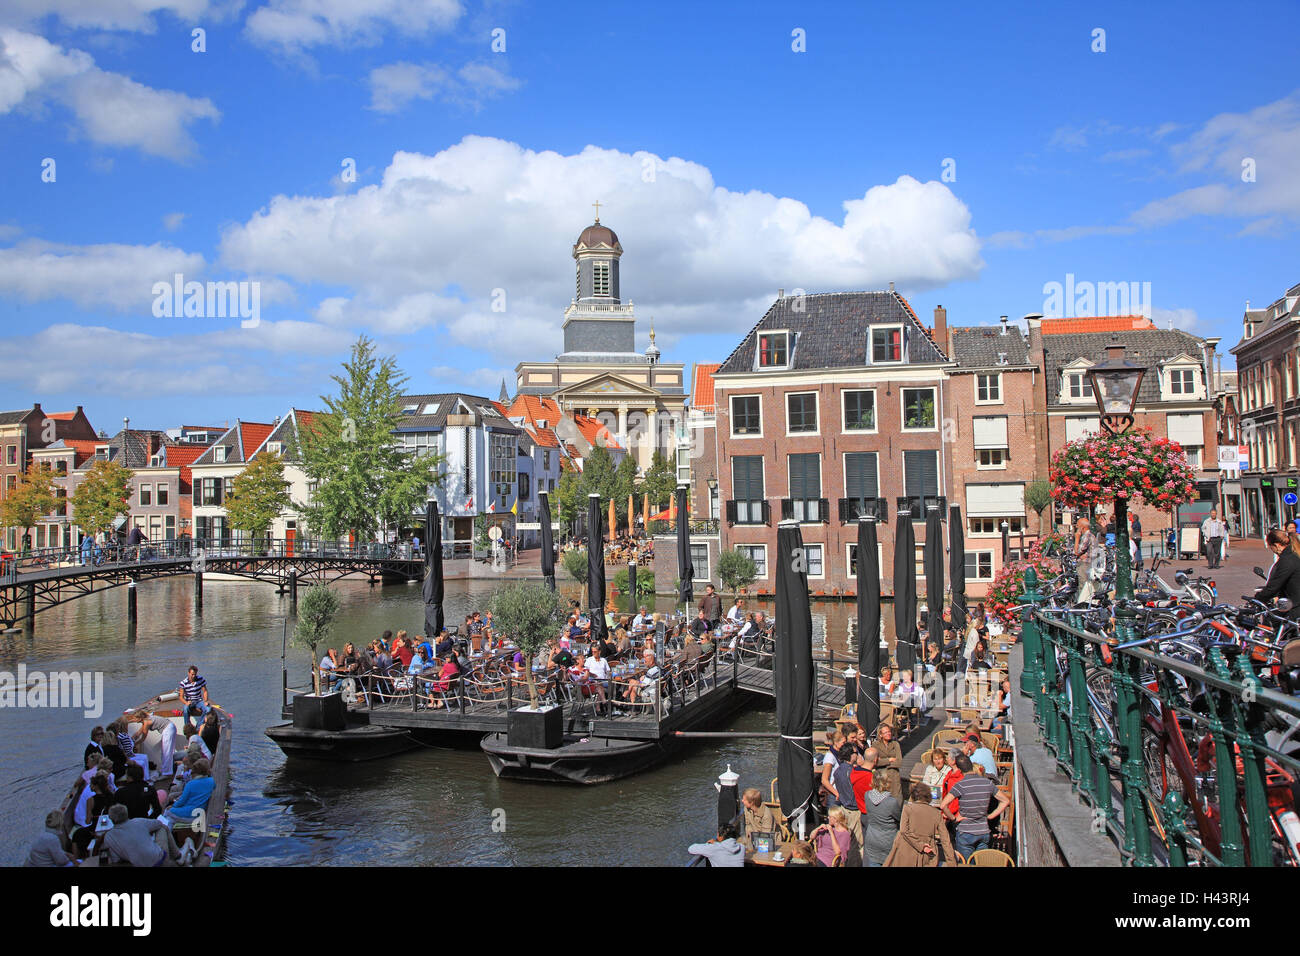 The Netherlands, ailments, town view, harbour, tourists, - Stock Image